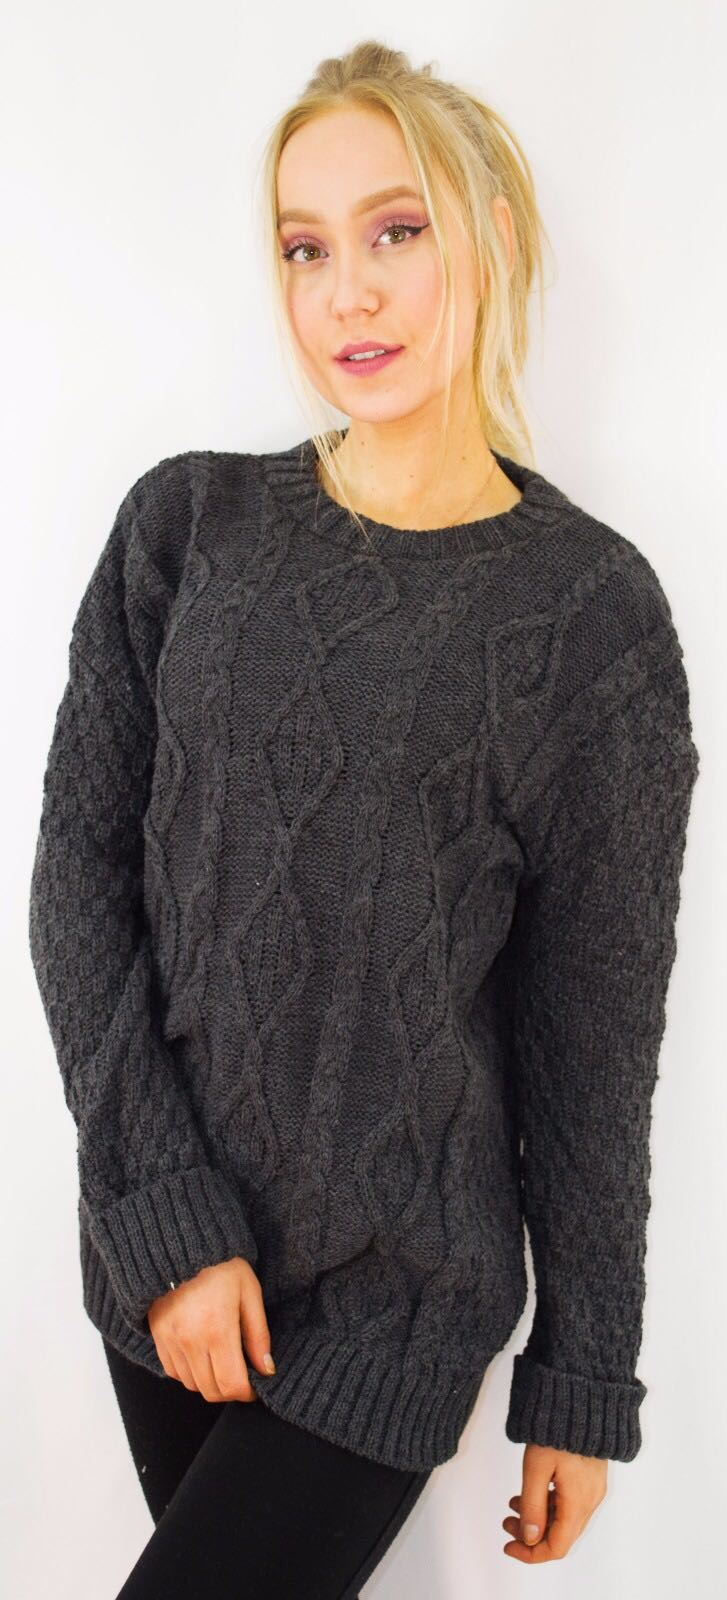 New-Ladies-Long-Manche-Chunky-Cable-Knitted-Jumper-crew-neck-hiver-Sweater-Top miniature 12